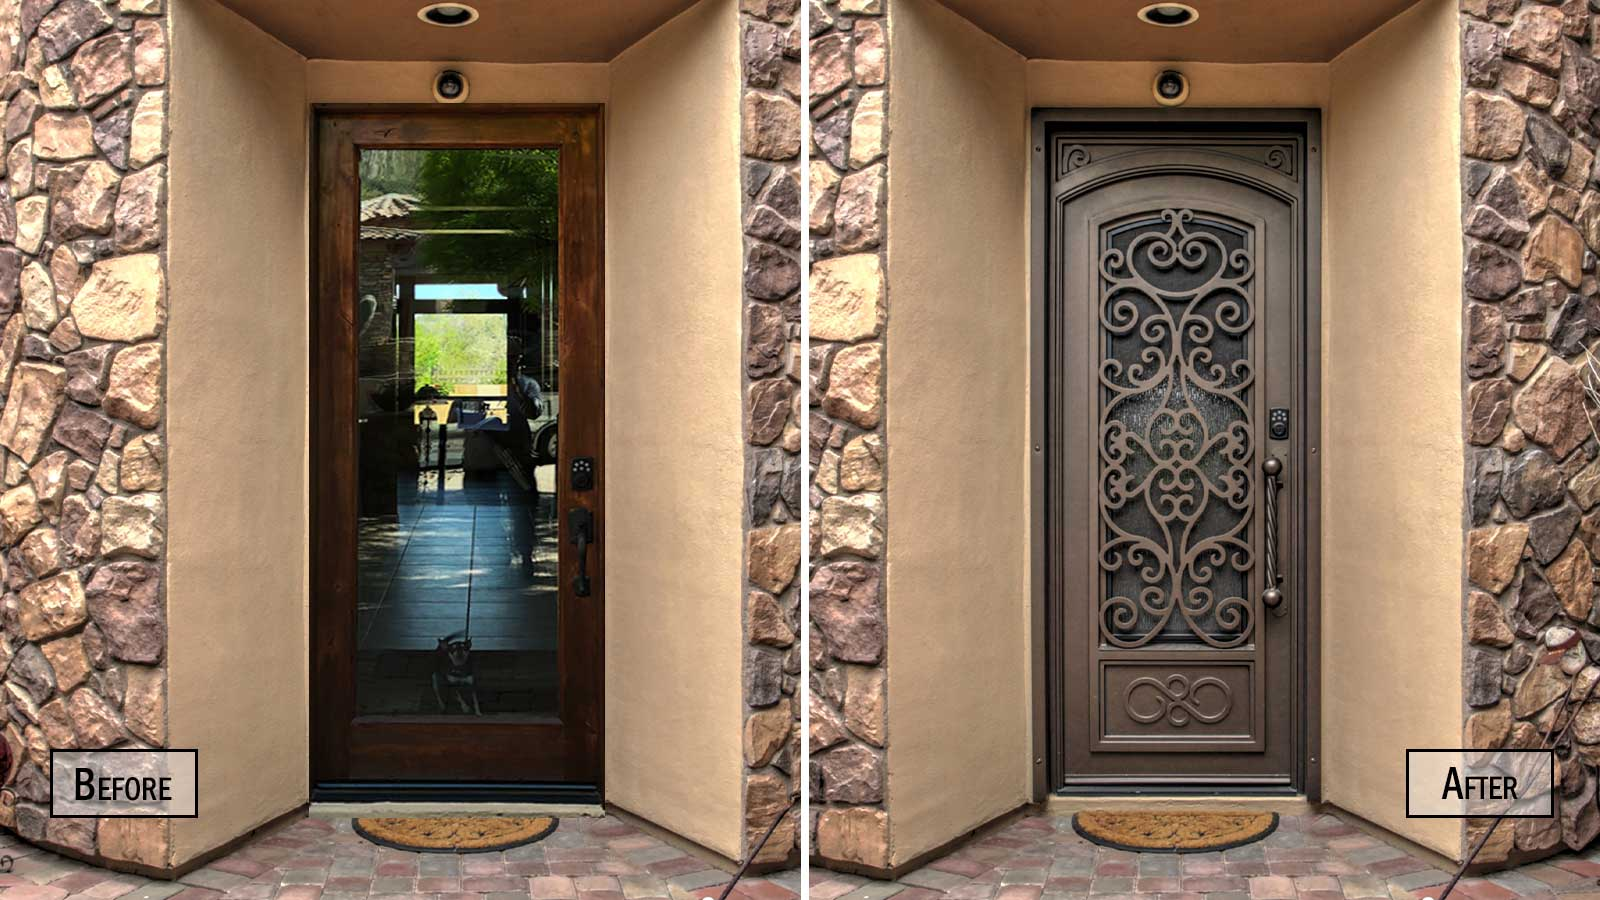 Before and after picture of a wooden door replaced with an Iron Entry Door from First Impression Ironworks